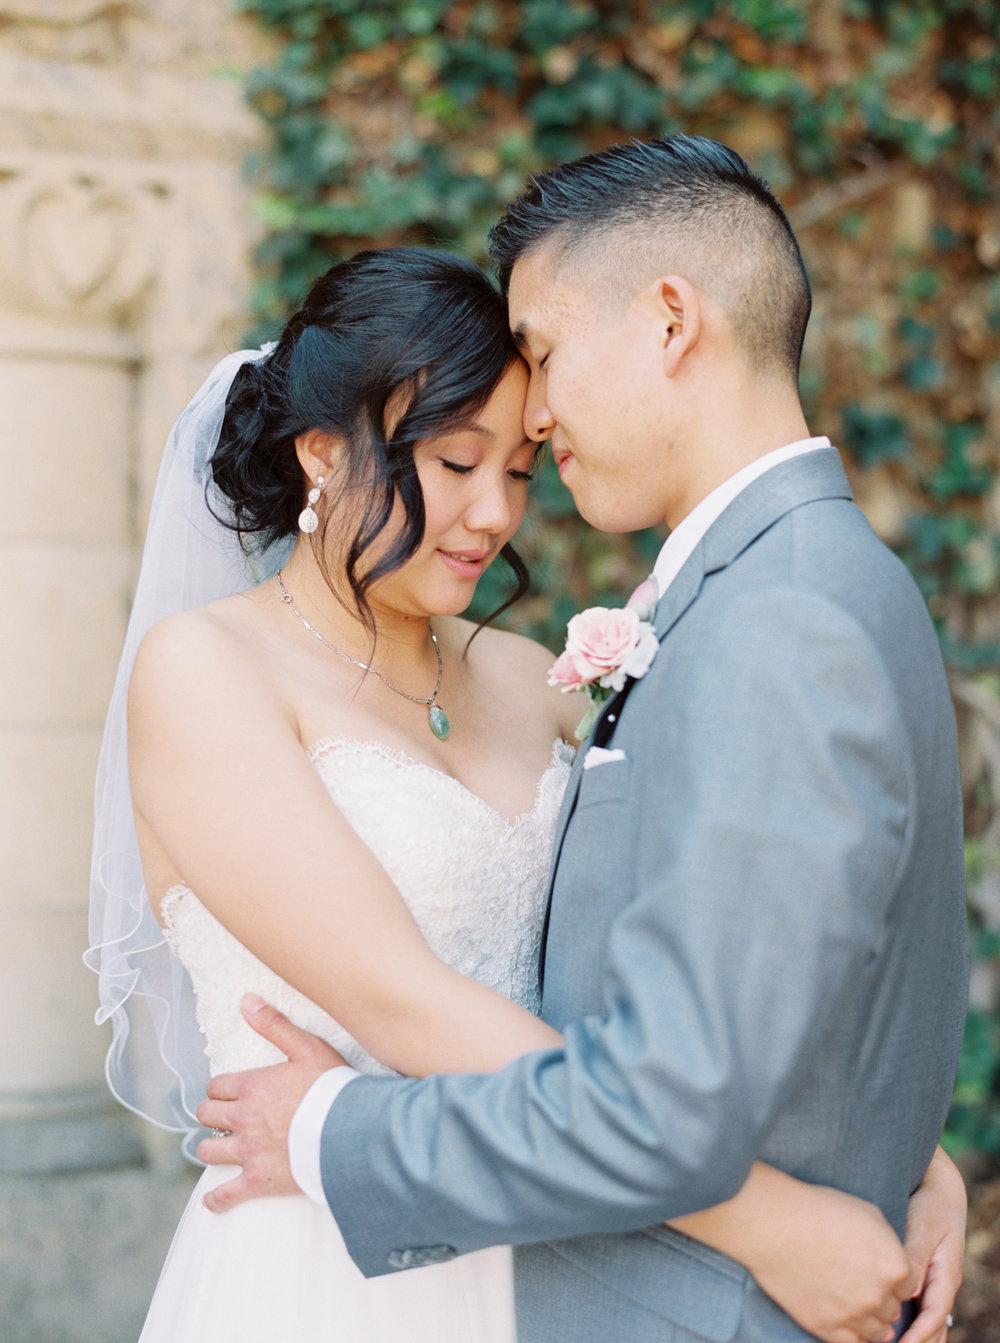 trynhphoto_wedding_photography_Standford_PaloAlto_SF_BayArea_Destination_OC_HA-52.jpg